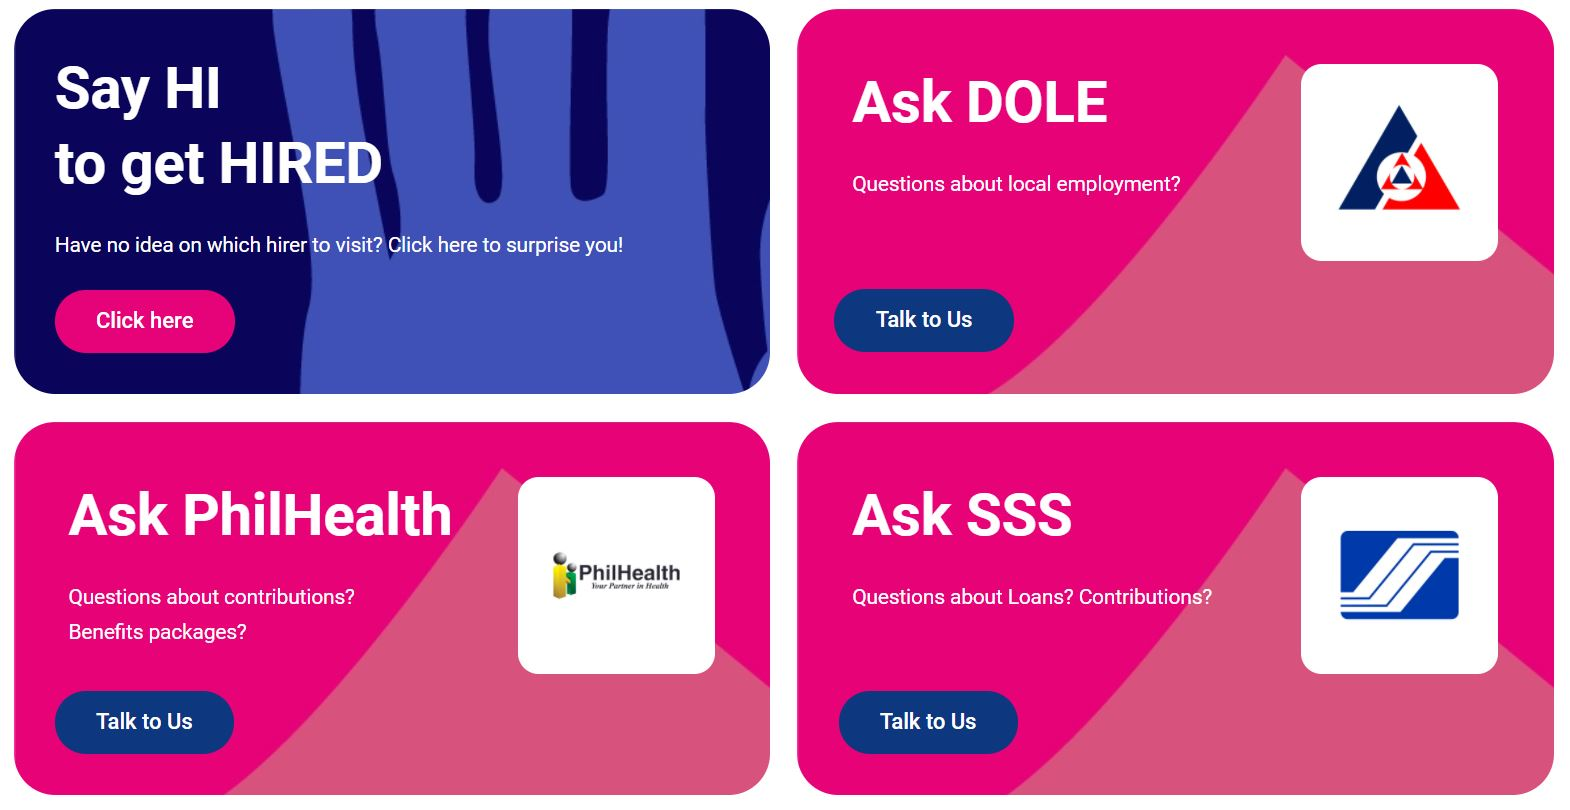 JobStreet Virtual Career Fair: LiveChat with DOLE, SSS, and Phil-Health